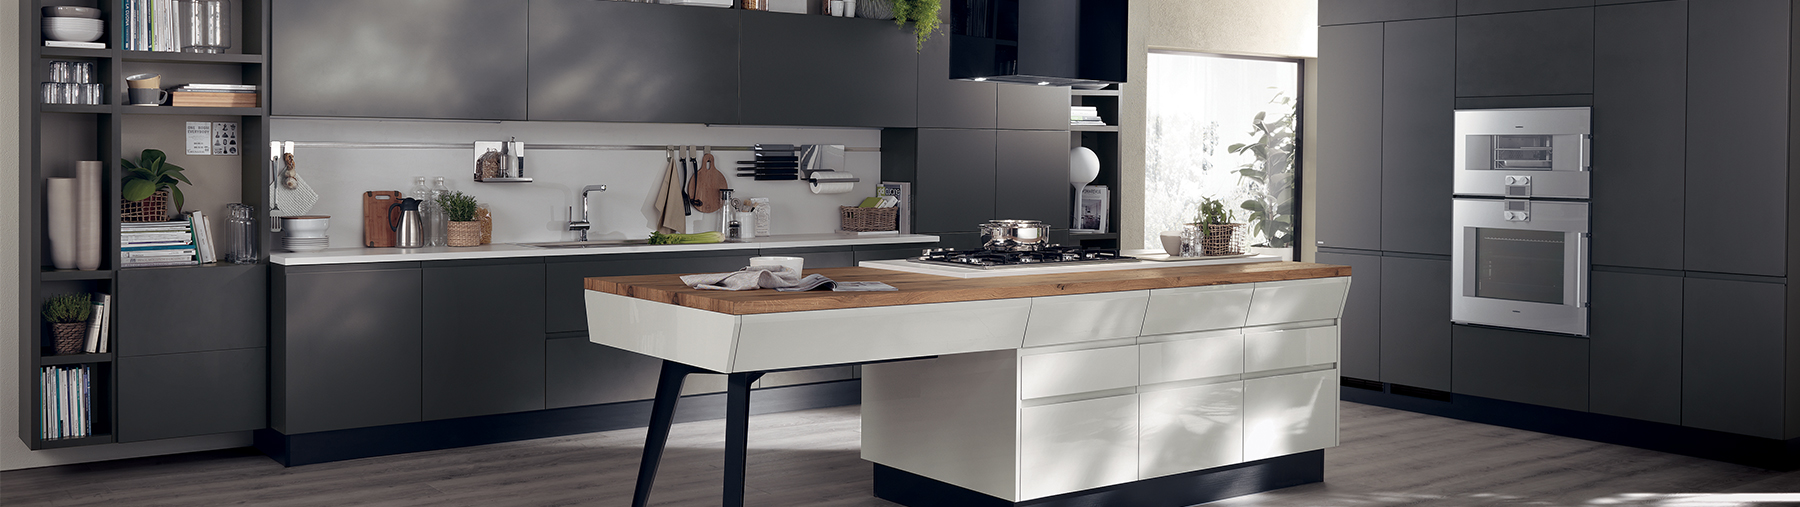 Scavolini USAItalian Kitchens Bathrooms and Living Room